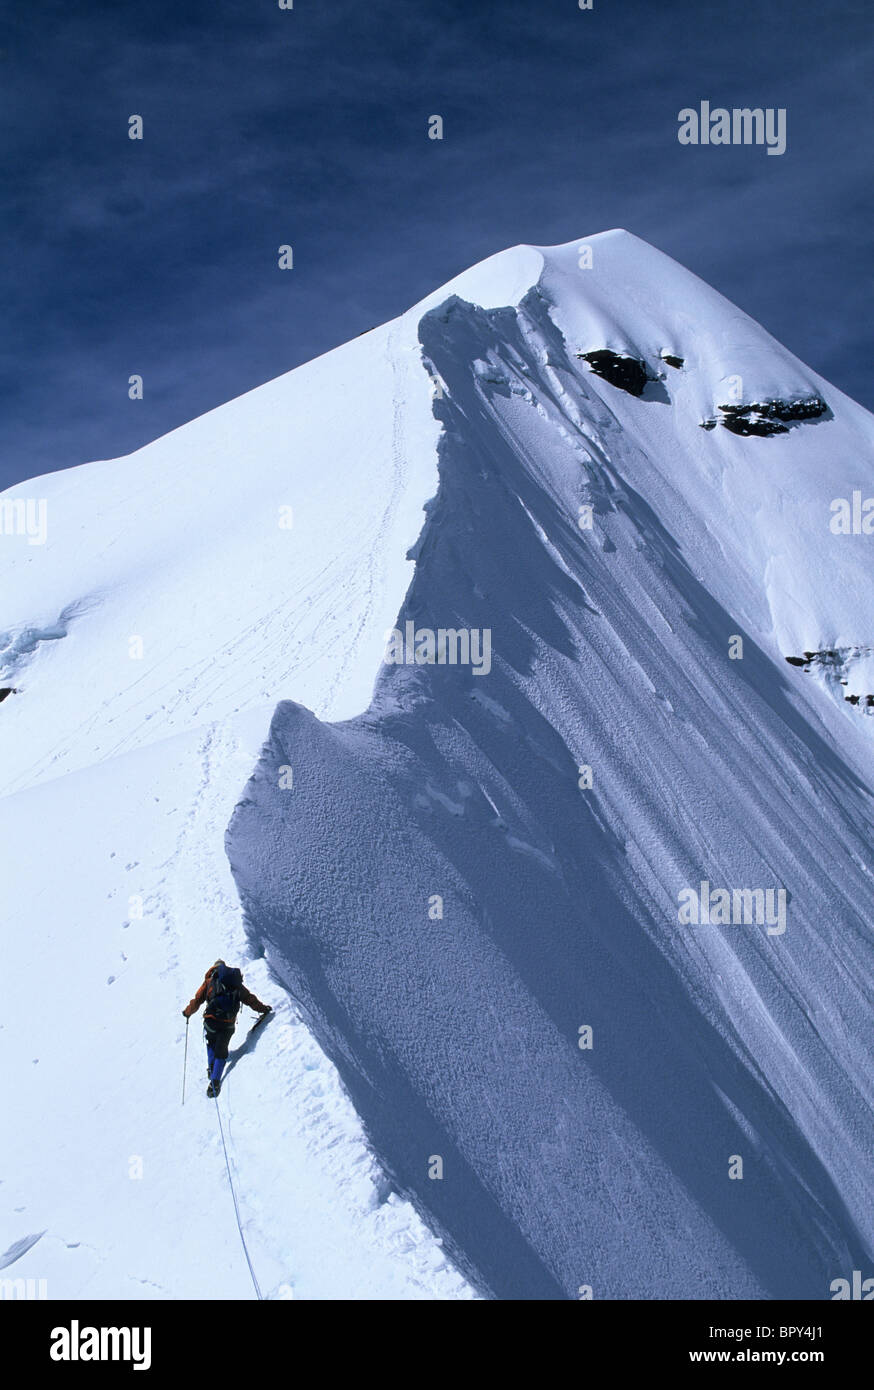 A mountain climber approaches the summit of Pequeno Alpamayo, Cordillera Real, Bolivia - Stock Image